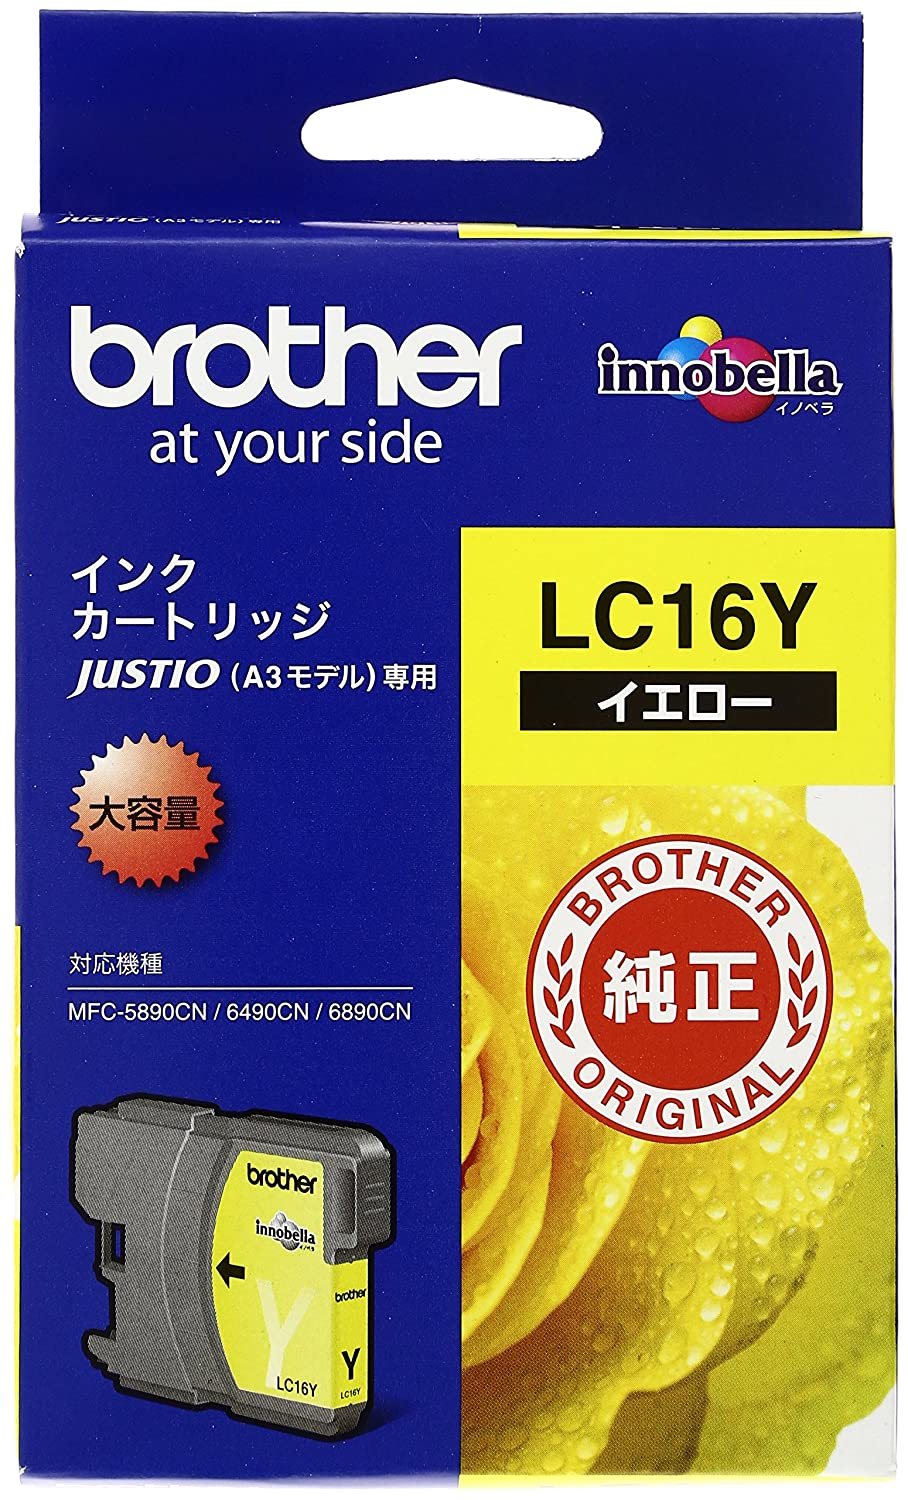 brother 純正インクカートリッジ LC16Y イエロー大容量